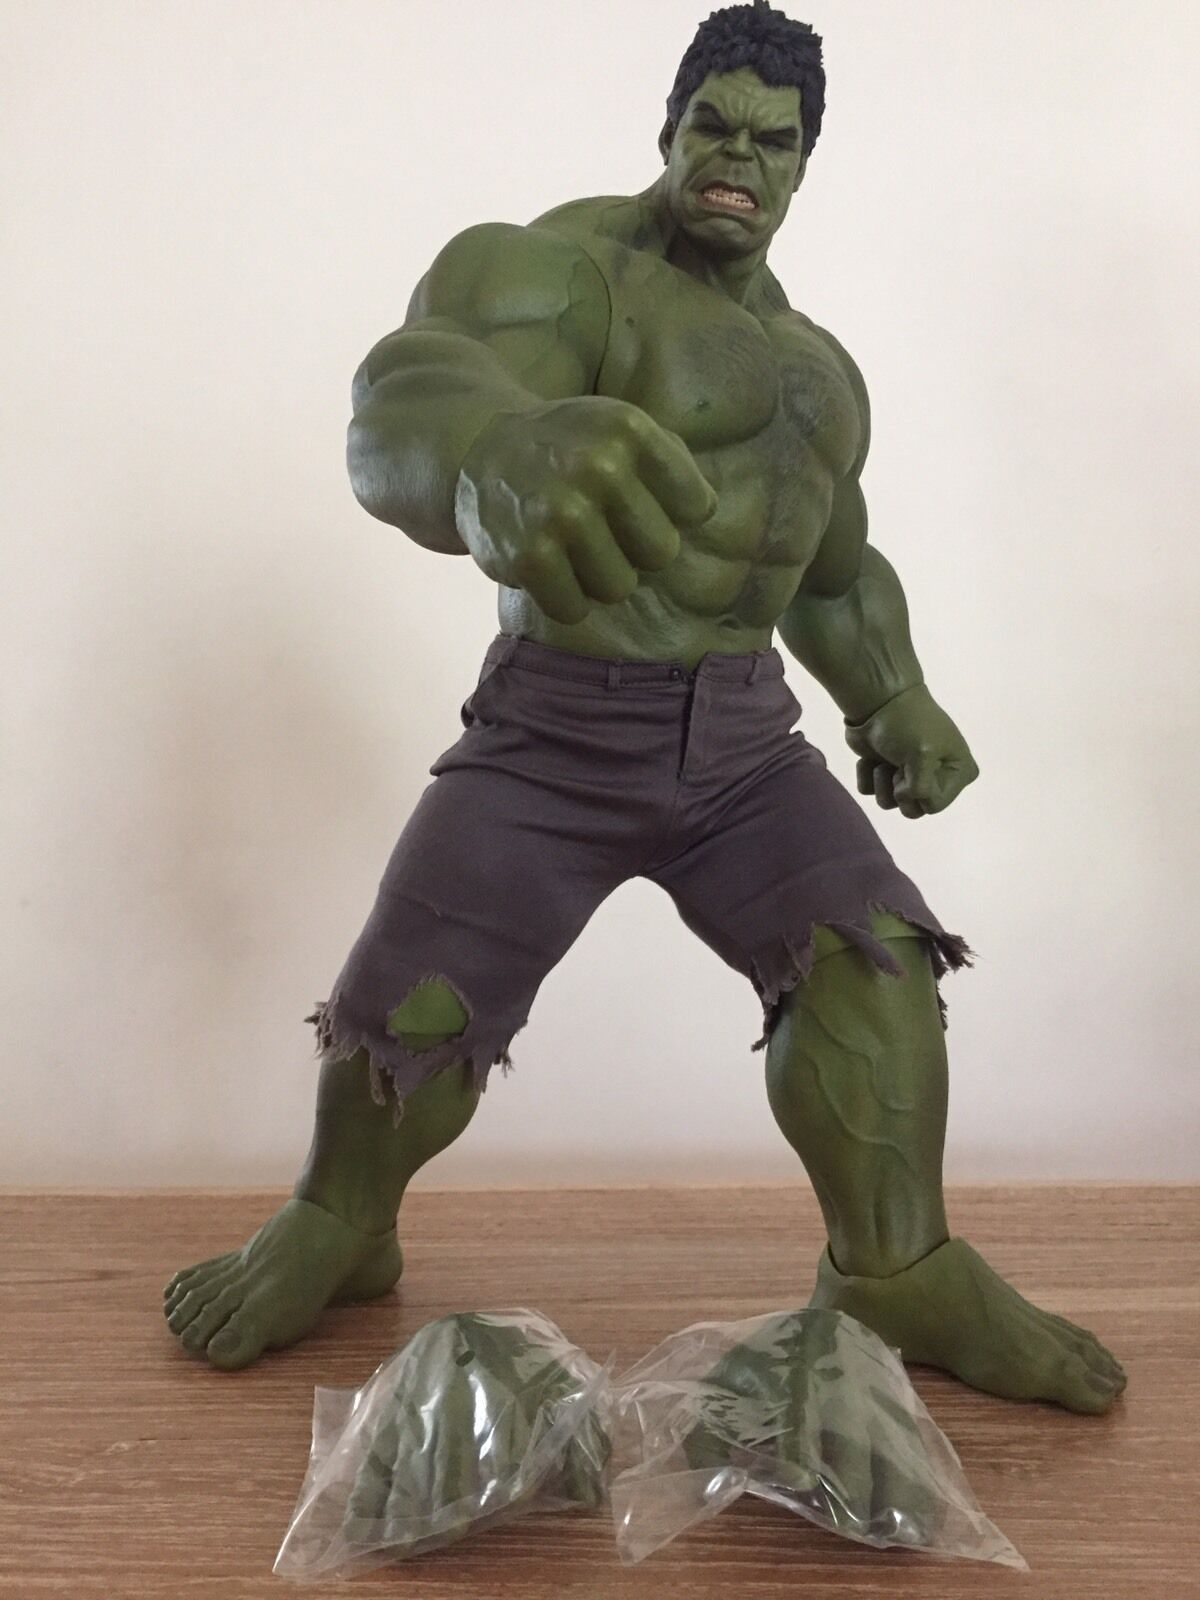 HOT TOYS TOYS TOYS MARVELS INCREDIBLE HULK MMS186 AVENGERS SIDESHOW BRUCE BANNER 63f096